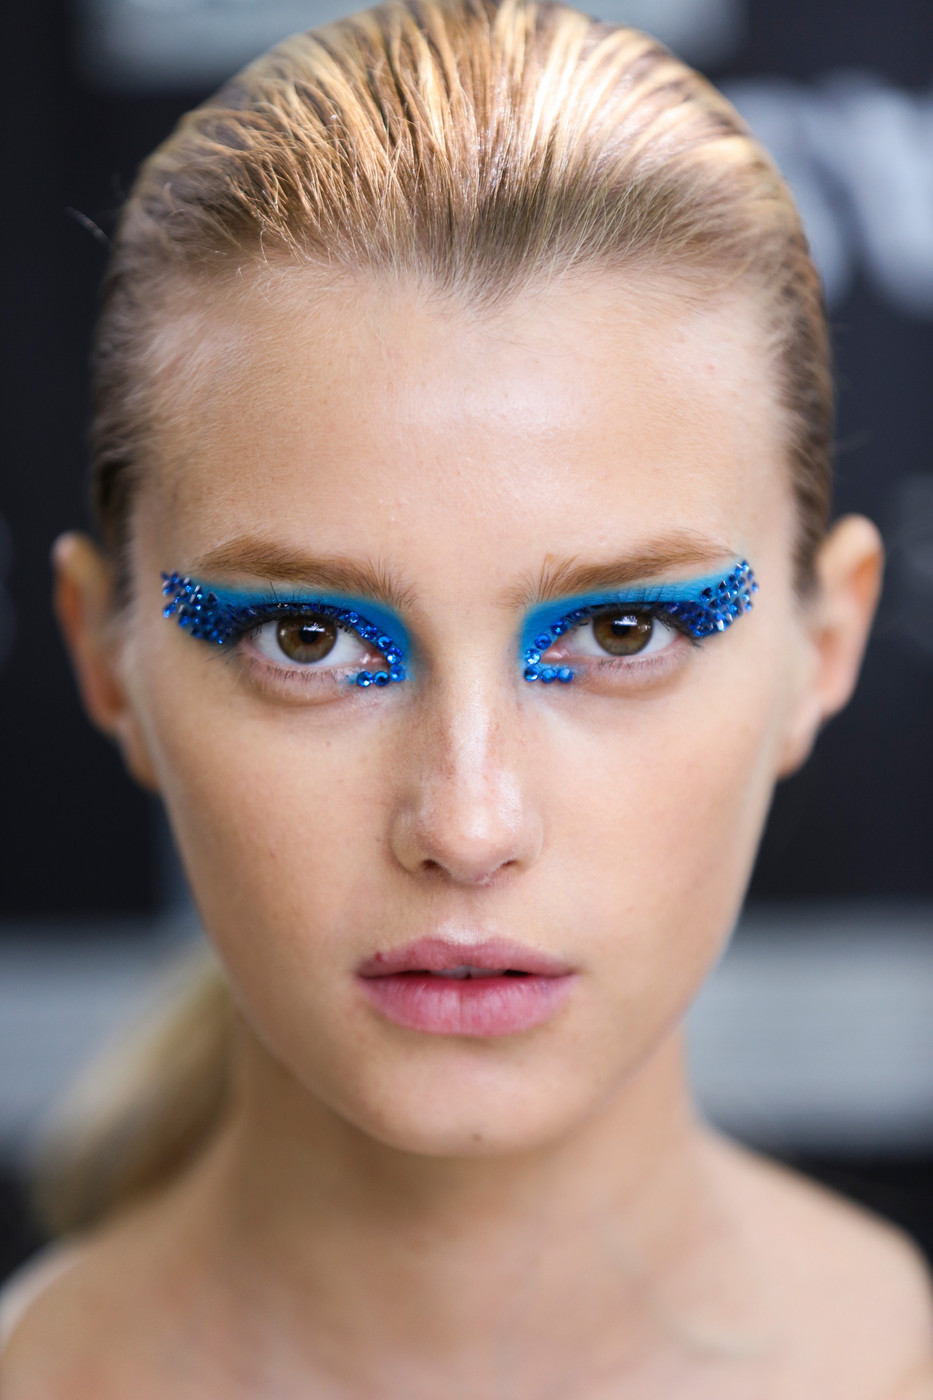 Makeup Tips and Ideas - Latest Make Up Looks and Products InStyle 54